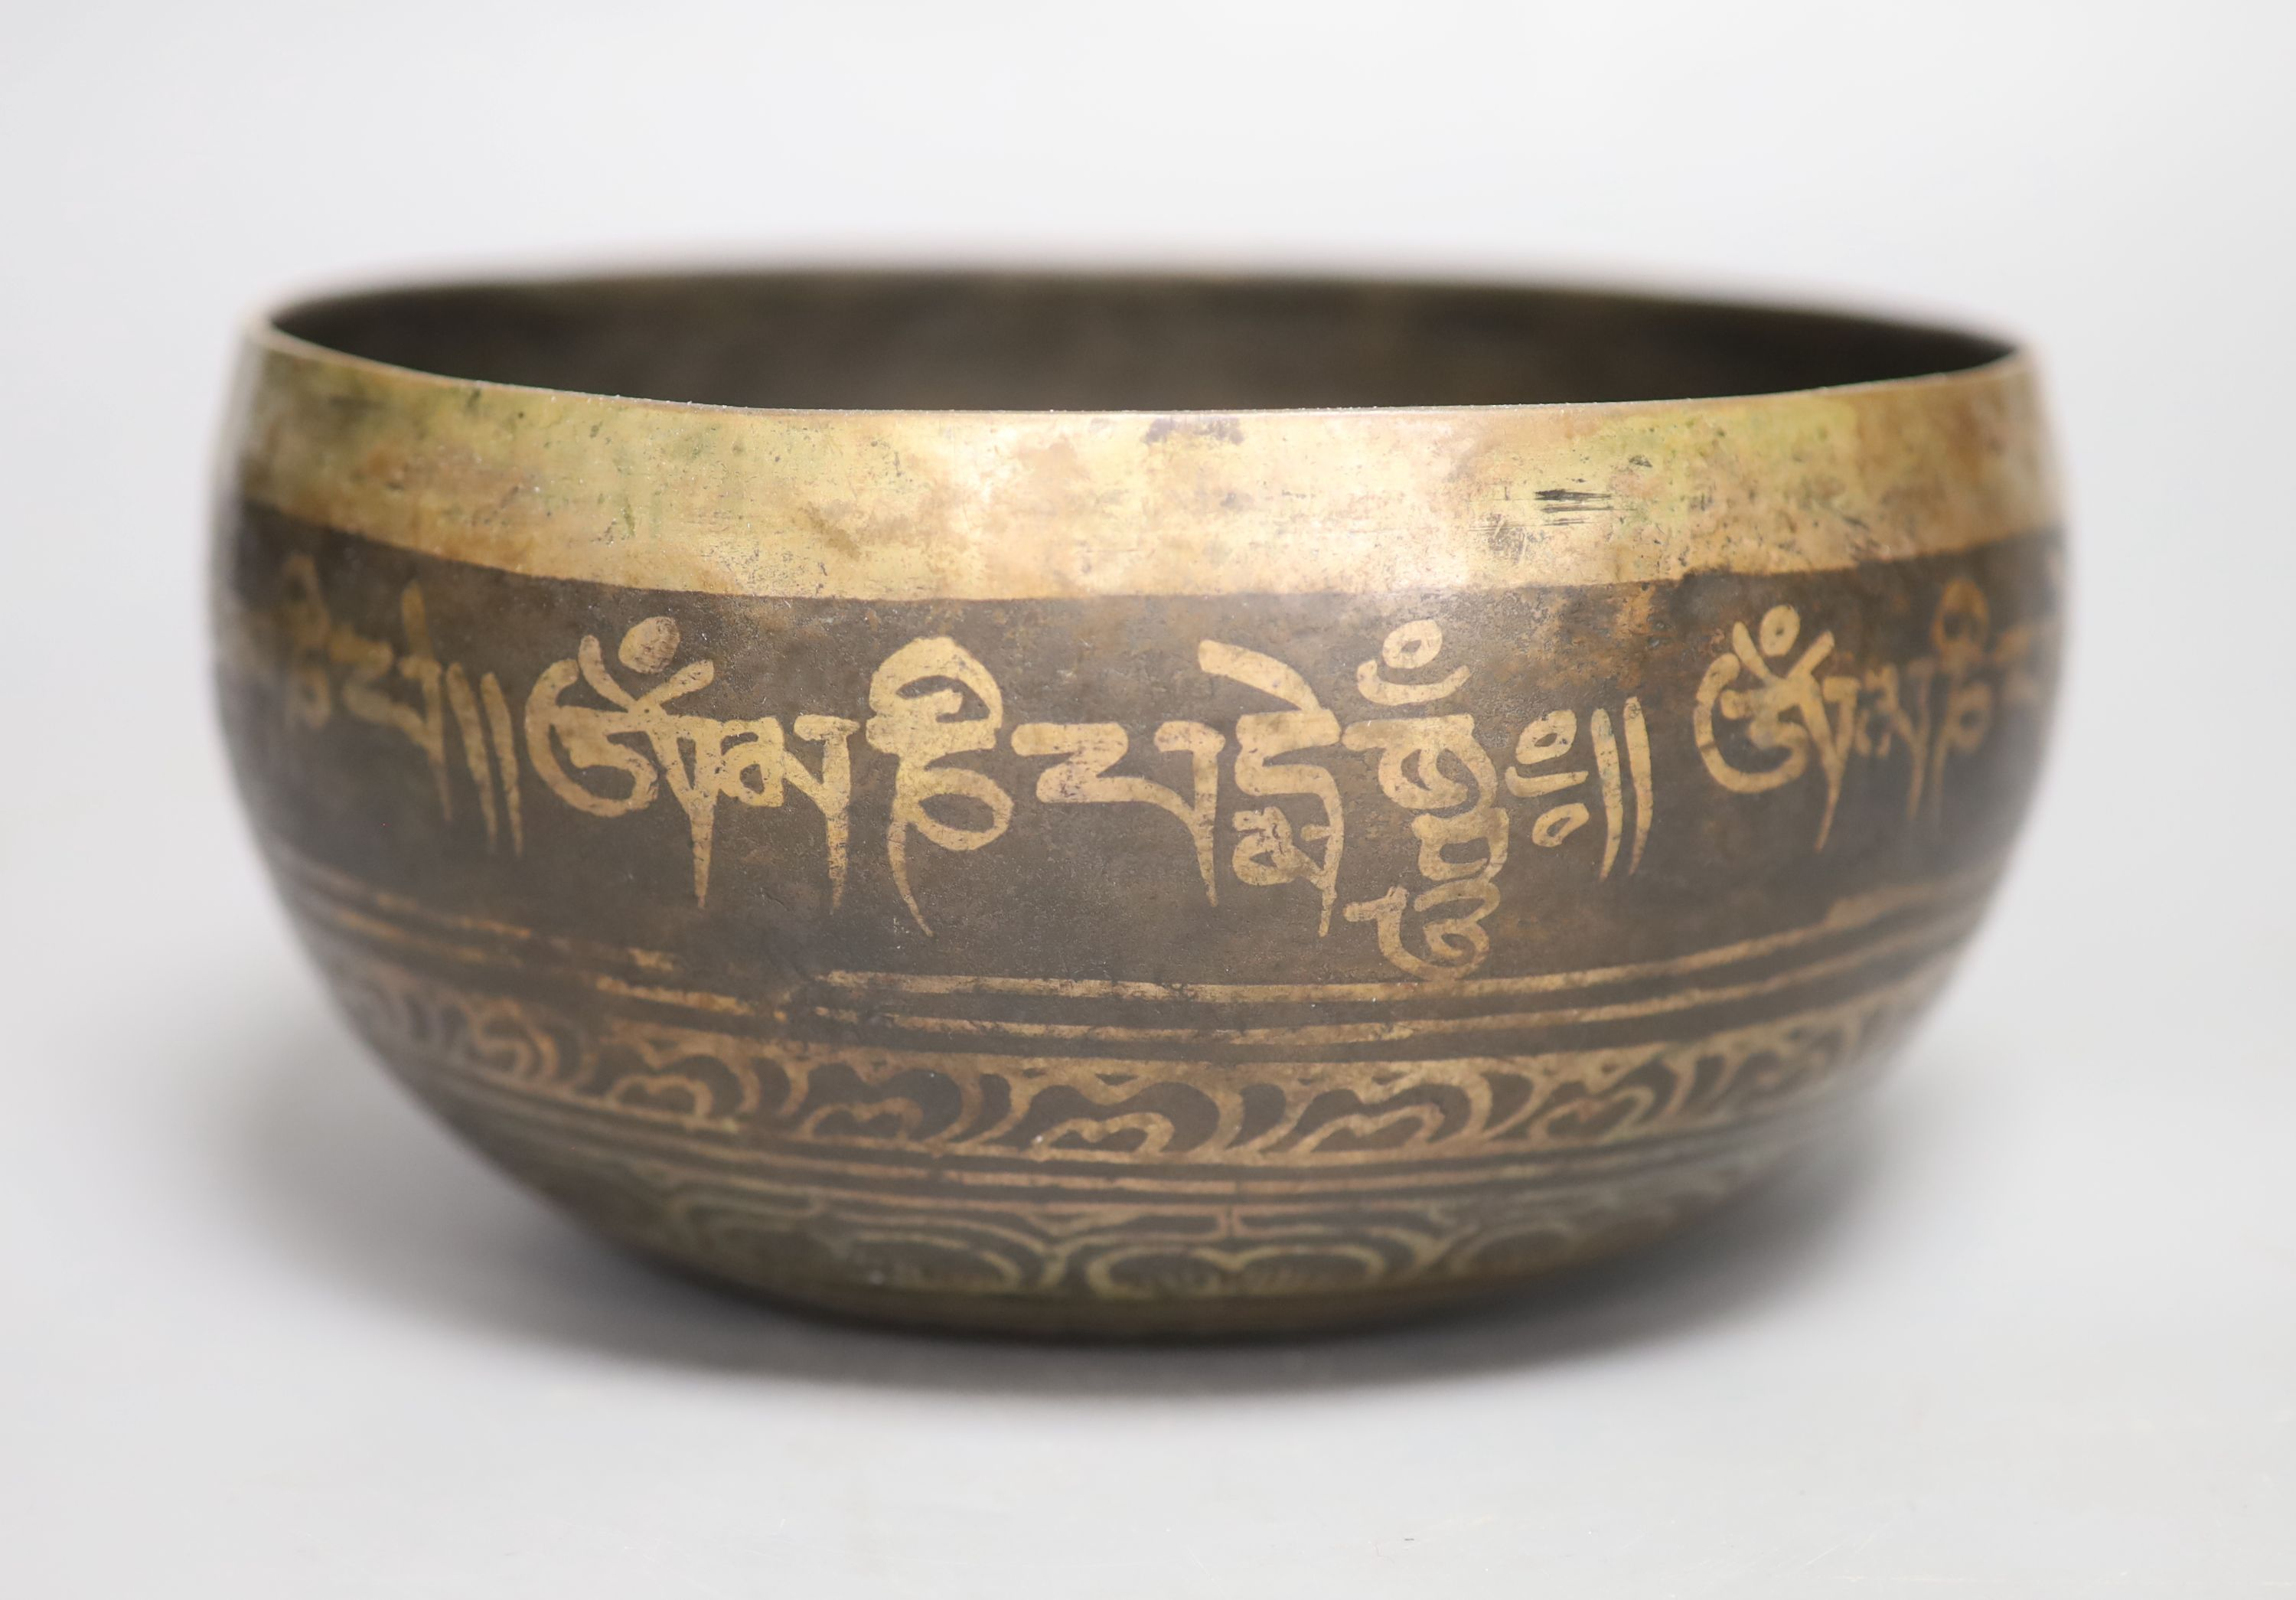 A Middle Eastern white metal and copper damascened bell, banded with foliate patterns and Arabic